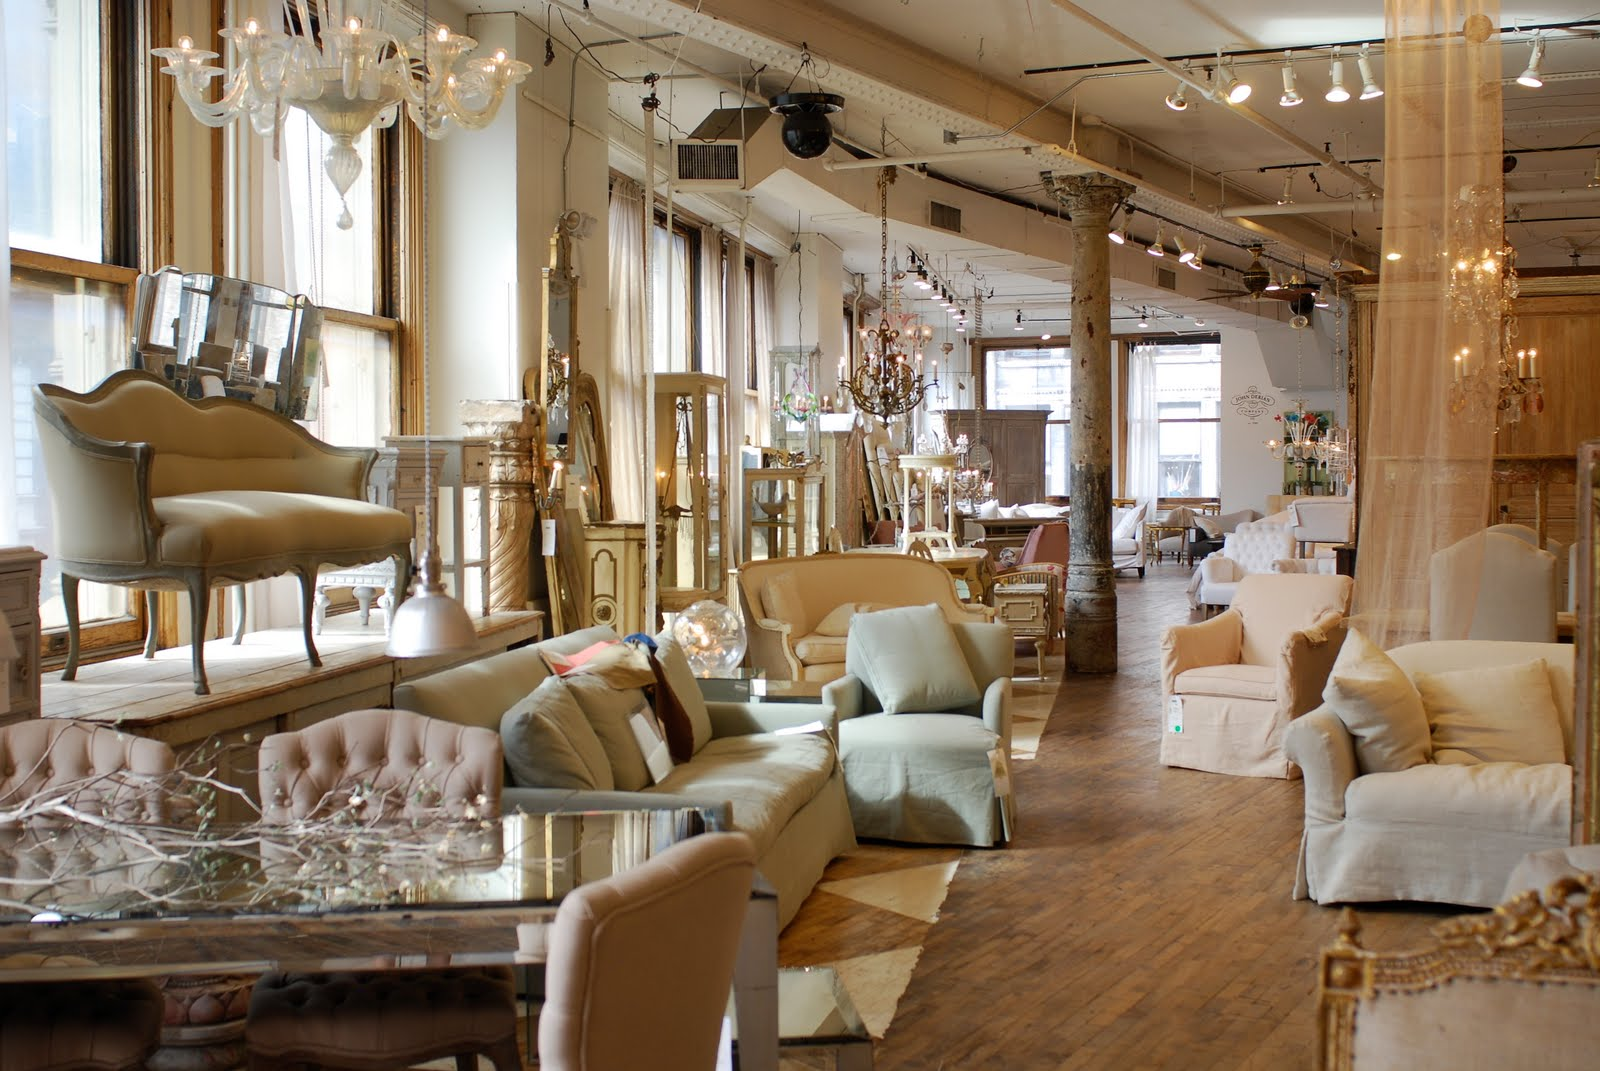 New York City S 38 Essential Home Goods And Furniture Stores Racked Ny